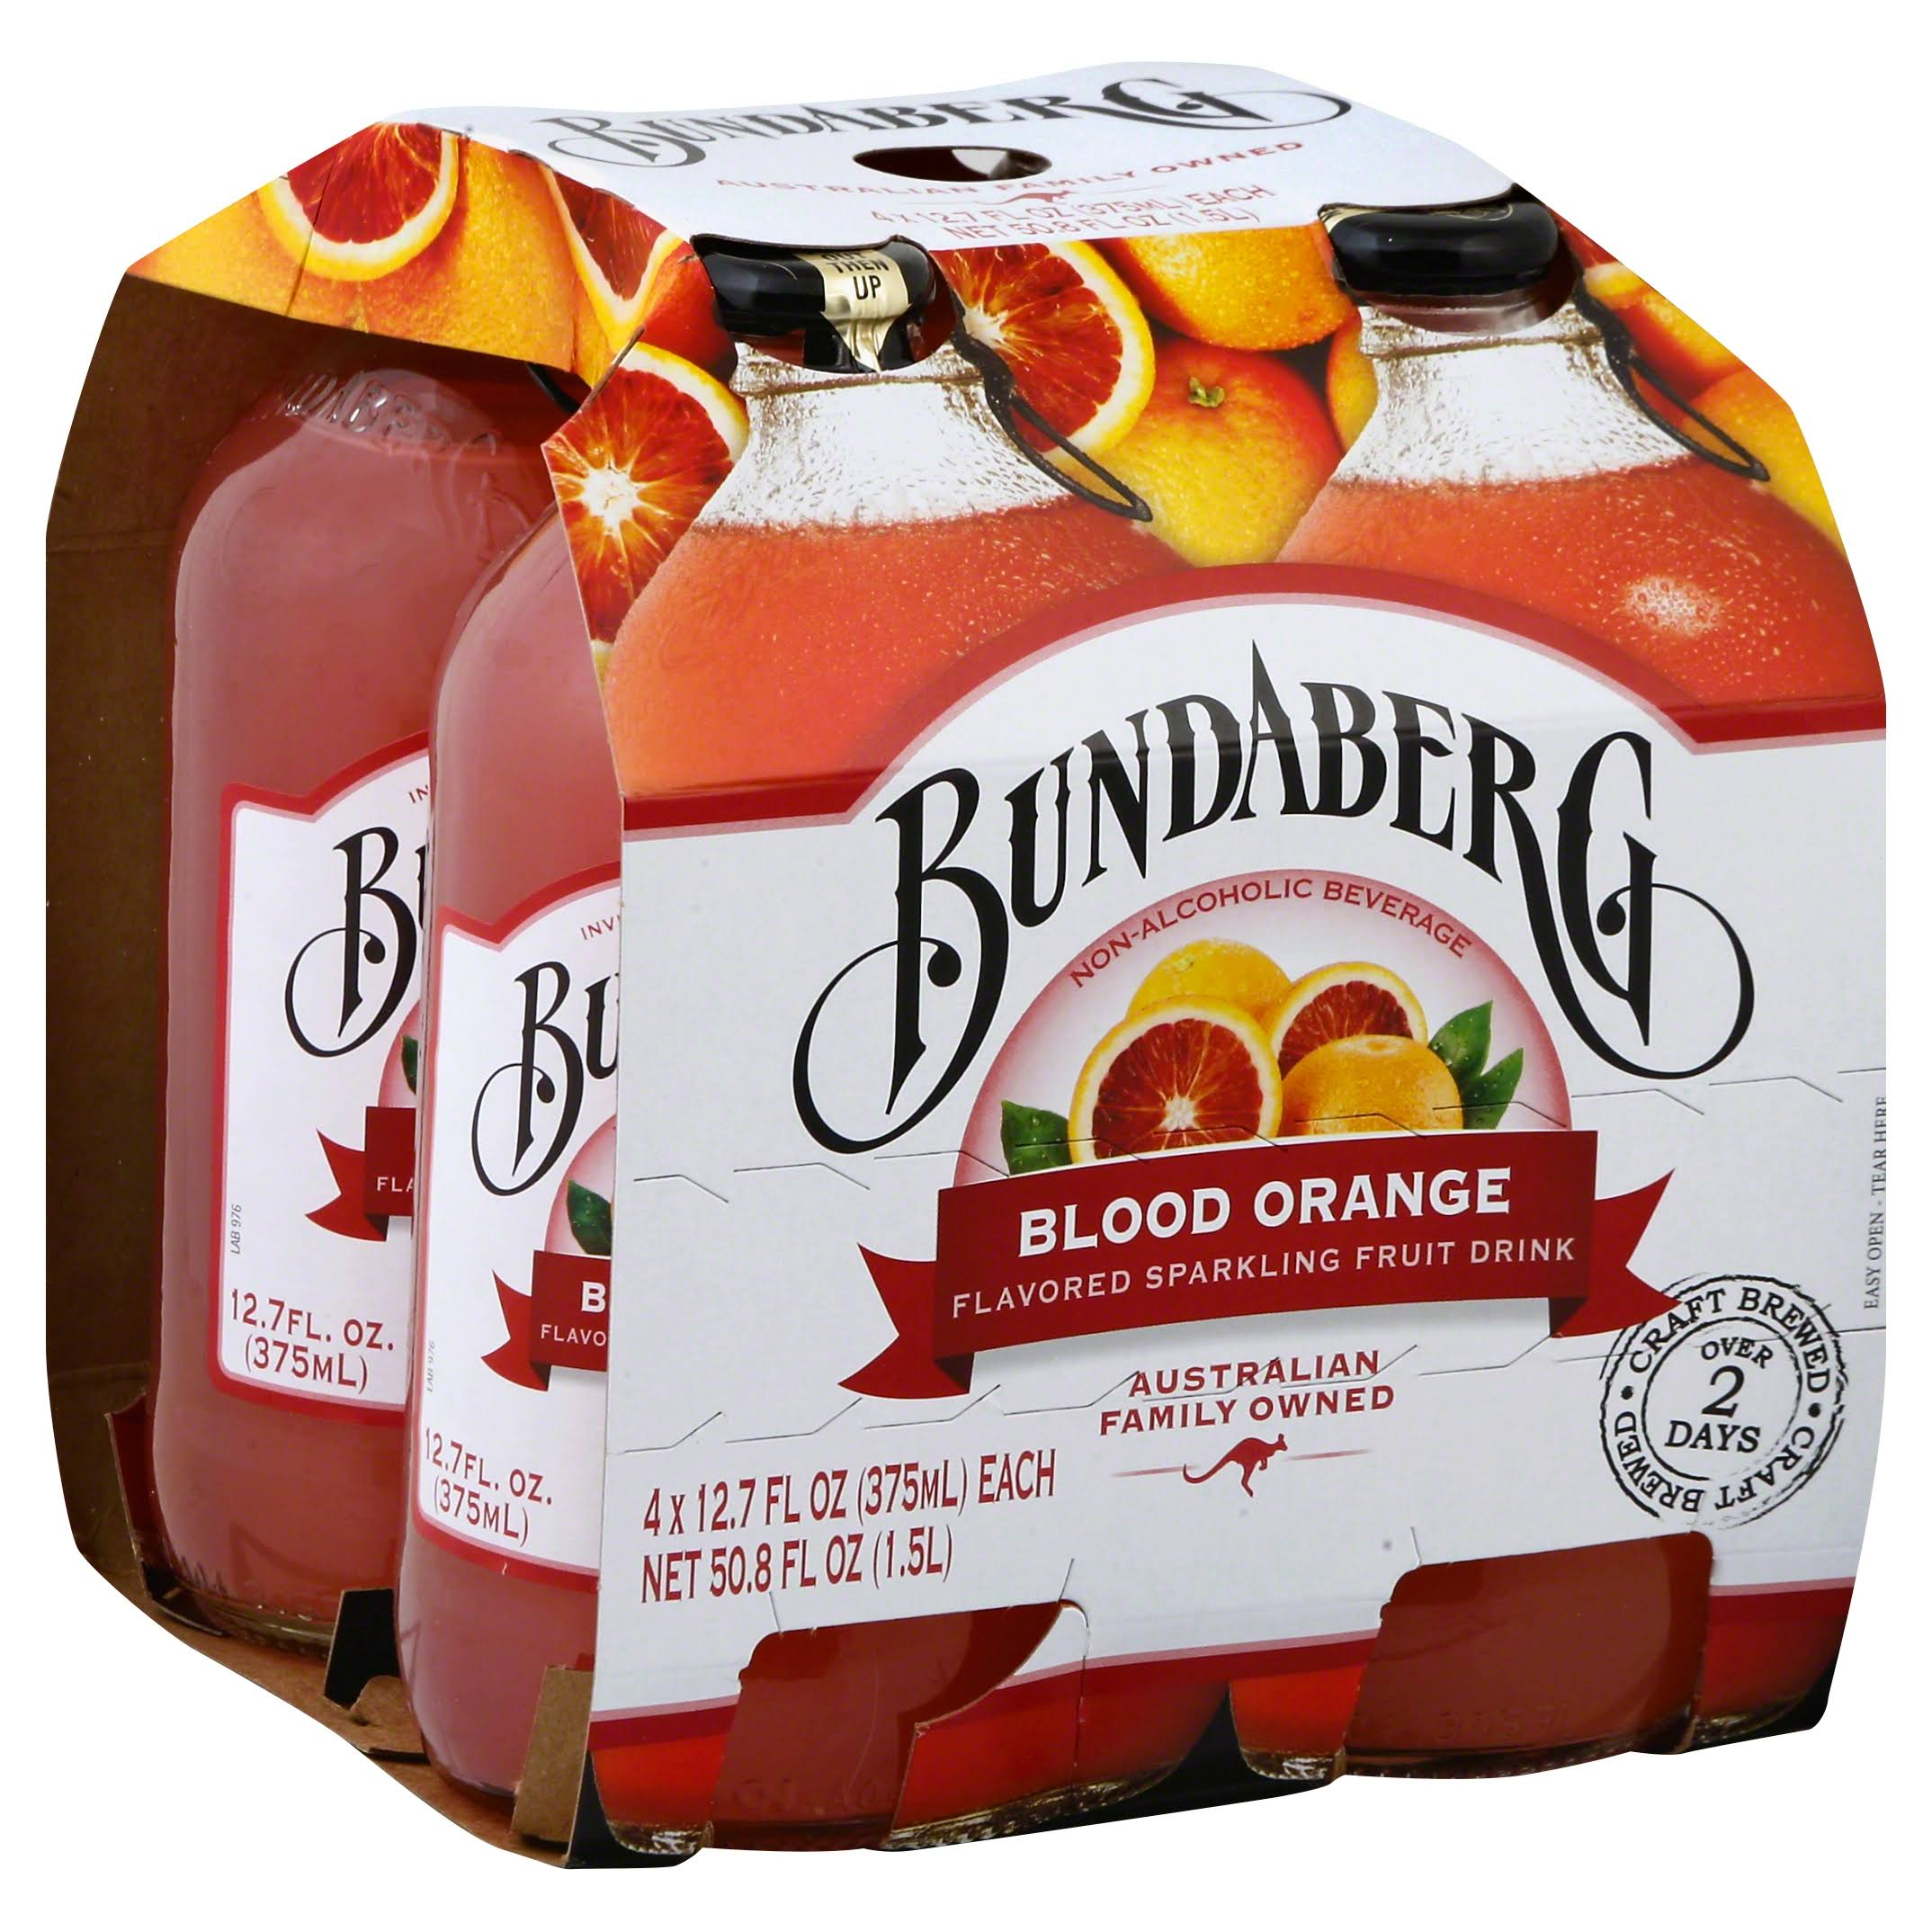 Bundaberg Sparkling Fruit Drink, Blood Orange Flavored - 4 pack, 12.7 fl oz each